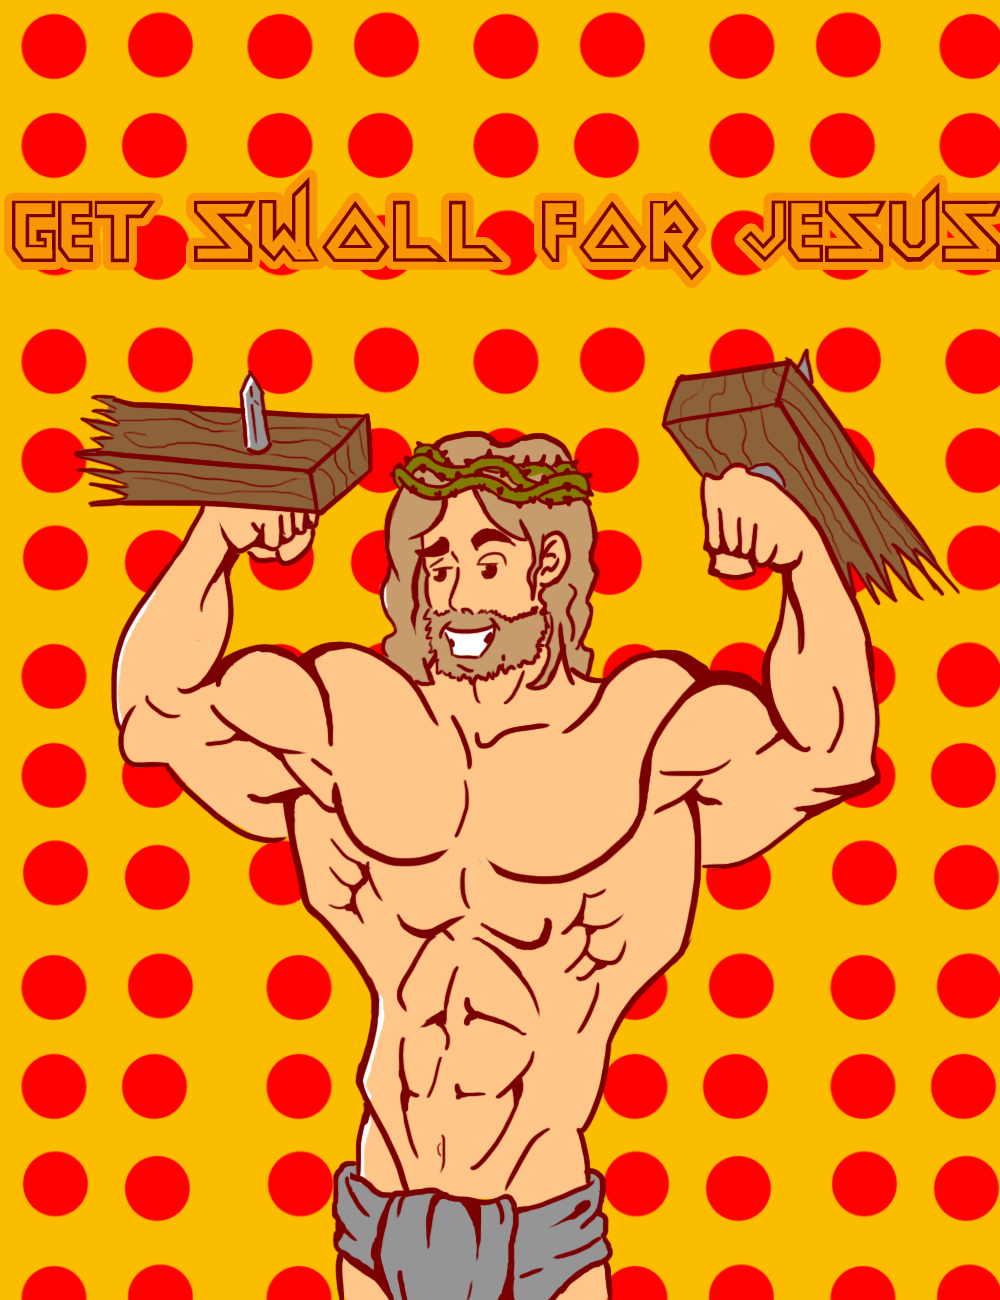 Get swoll for Jesus